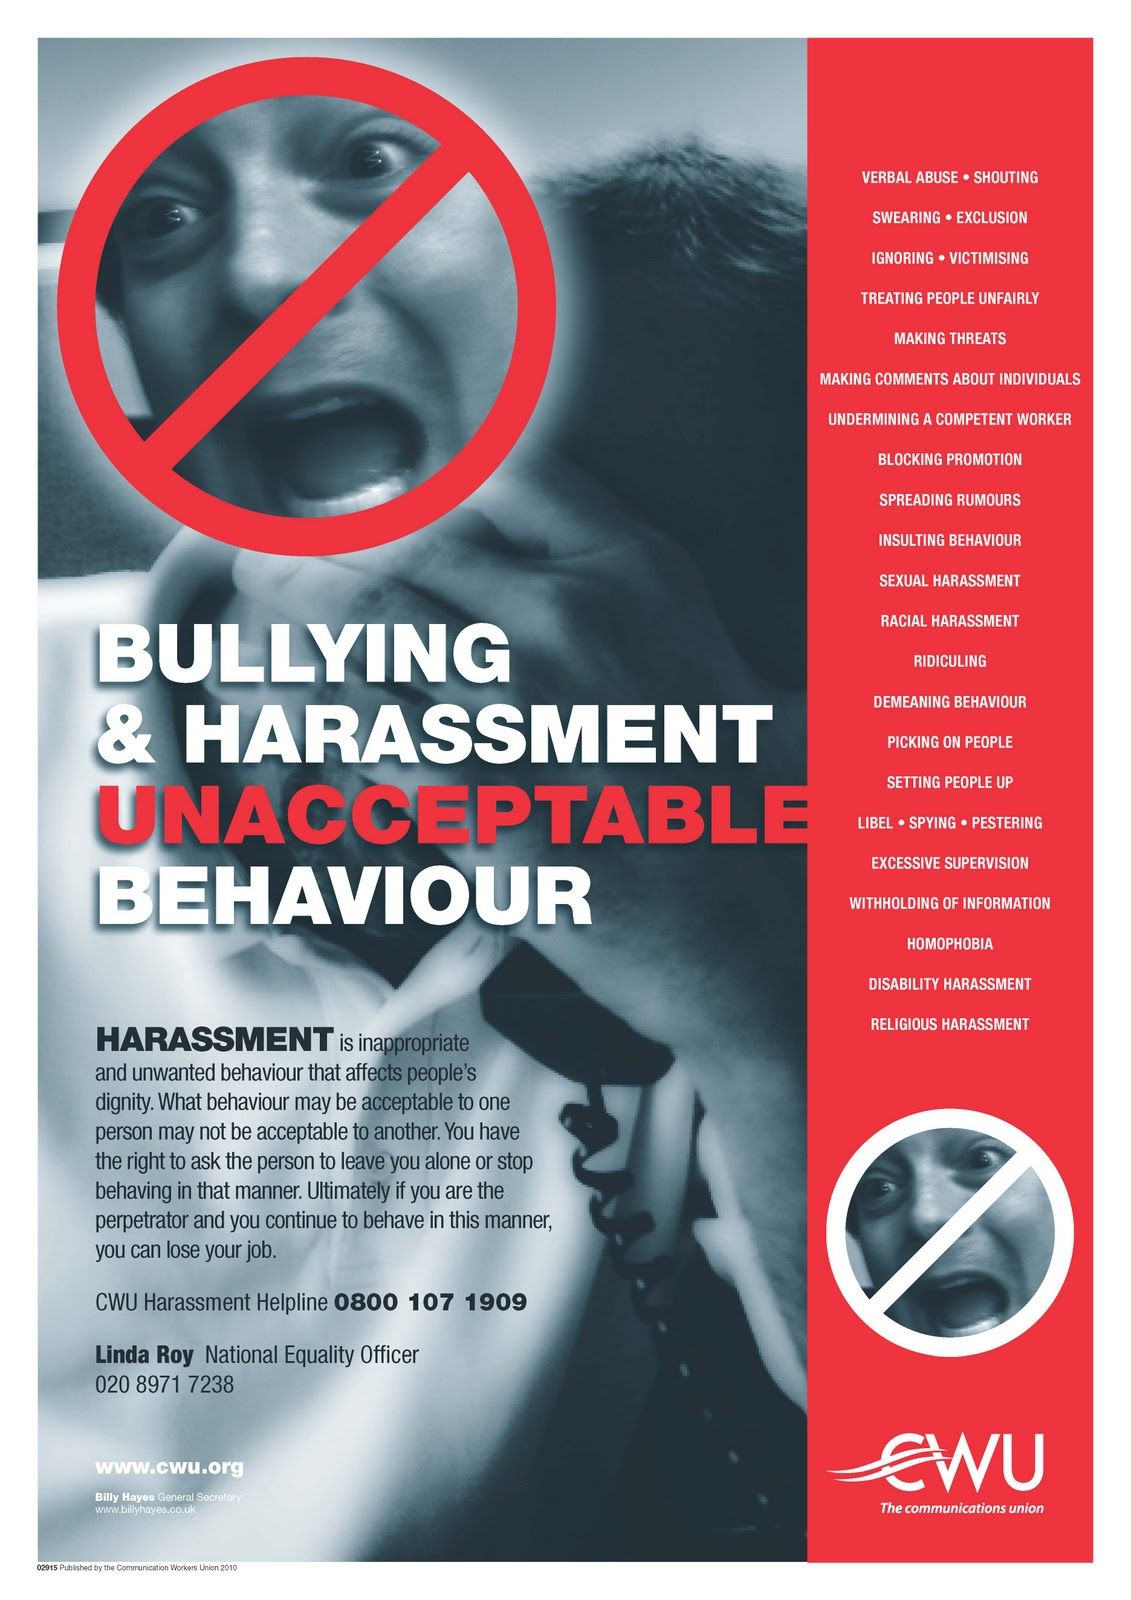 bullying harassment are not acceptable behavior poster in poster in the right panel describes various bullying boss behaviors the list is very very long and of course only a sampling of the bullying